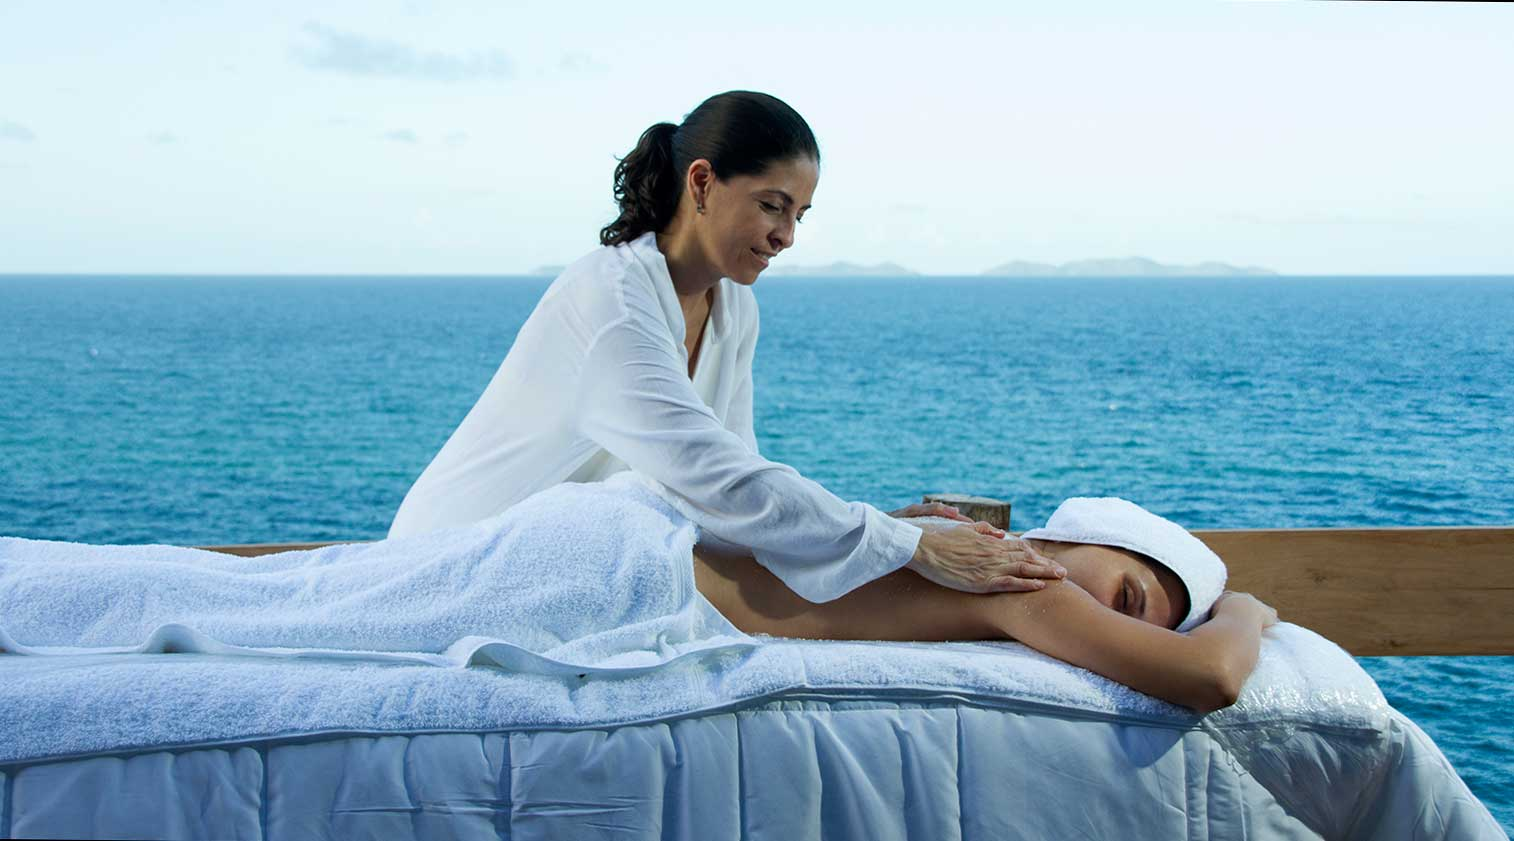 punta serpentina hotel spa salt massage - Spa & Bienestar